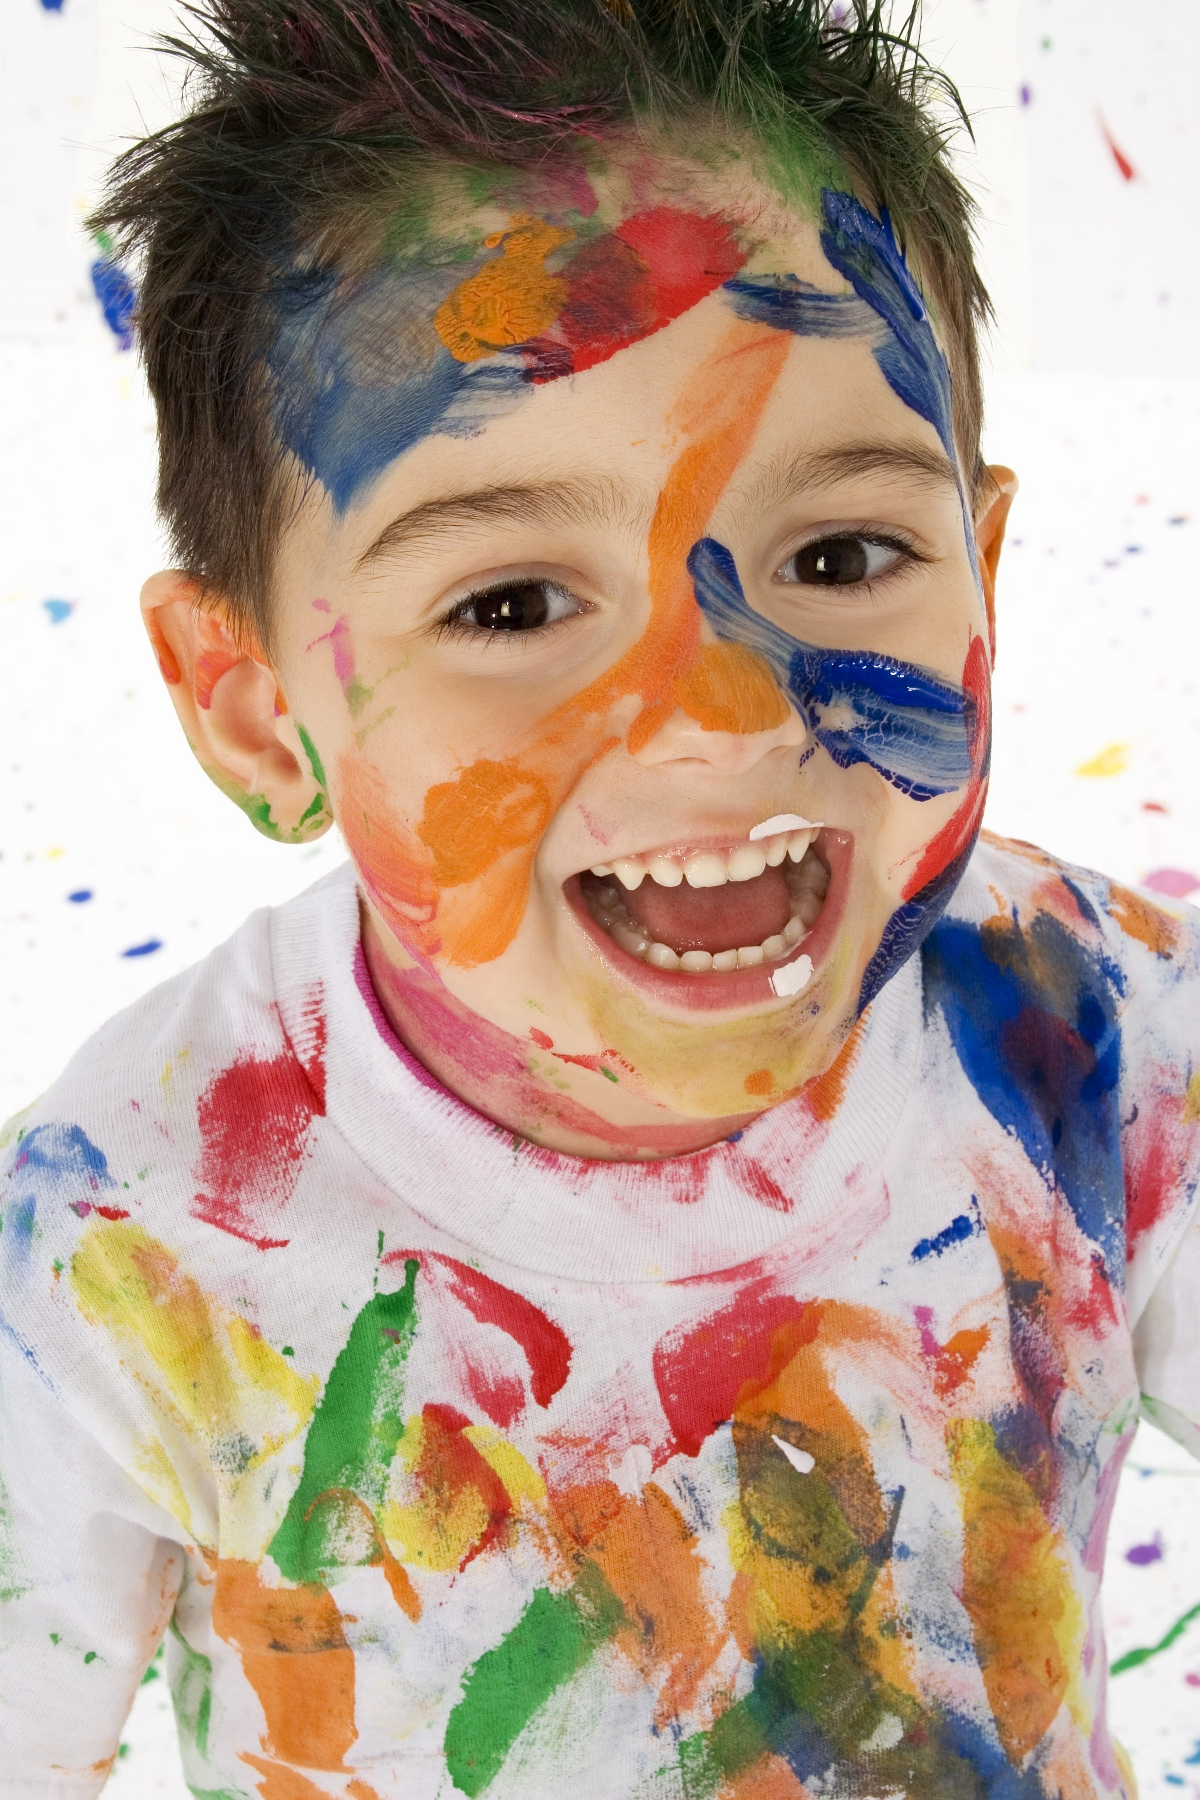 Little Boy Covered in Paint